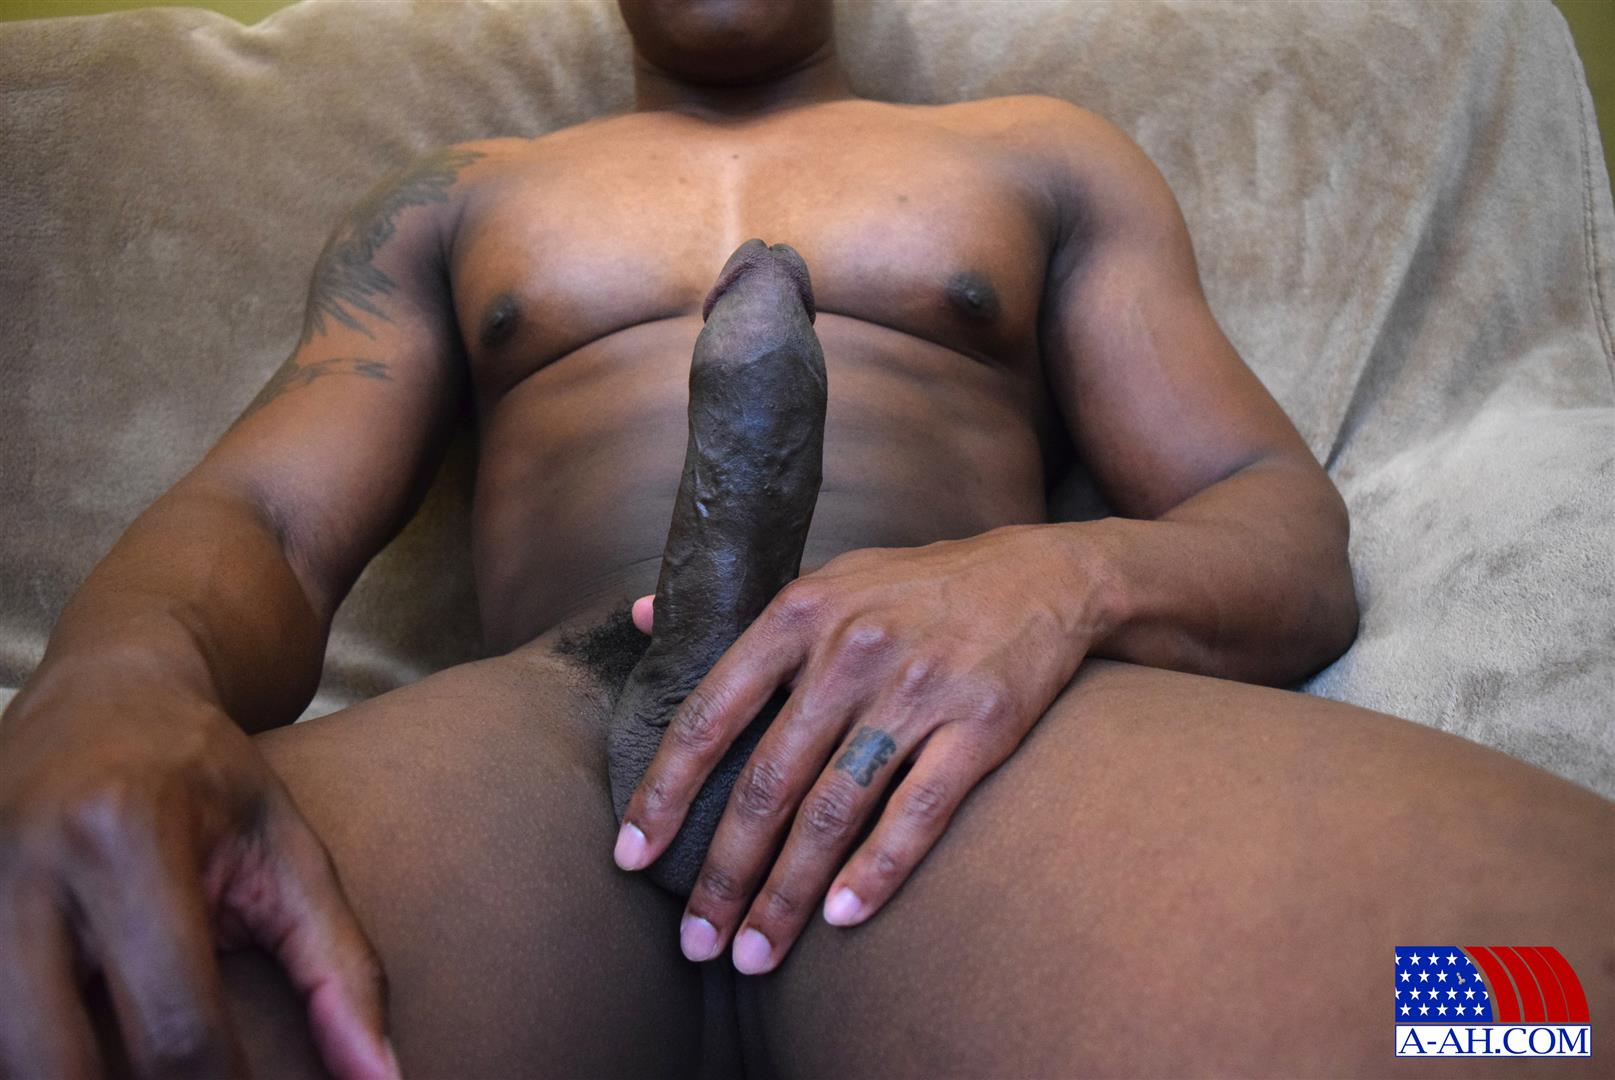 All American Heroes Sean Muscle Navy Petty Officer Jerking Big Black Cock Amateur Gay Porn 11 Big Muscular Black Navy Petty Officer Jerking His Big Black Cock